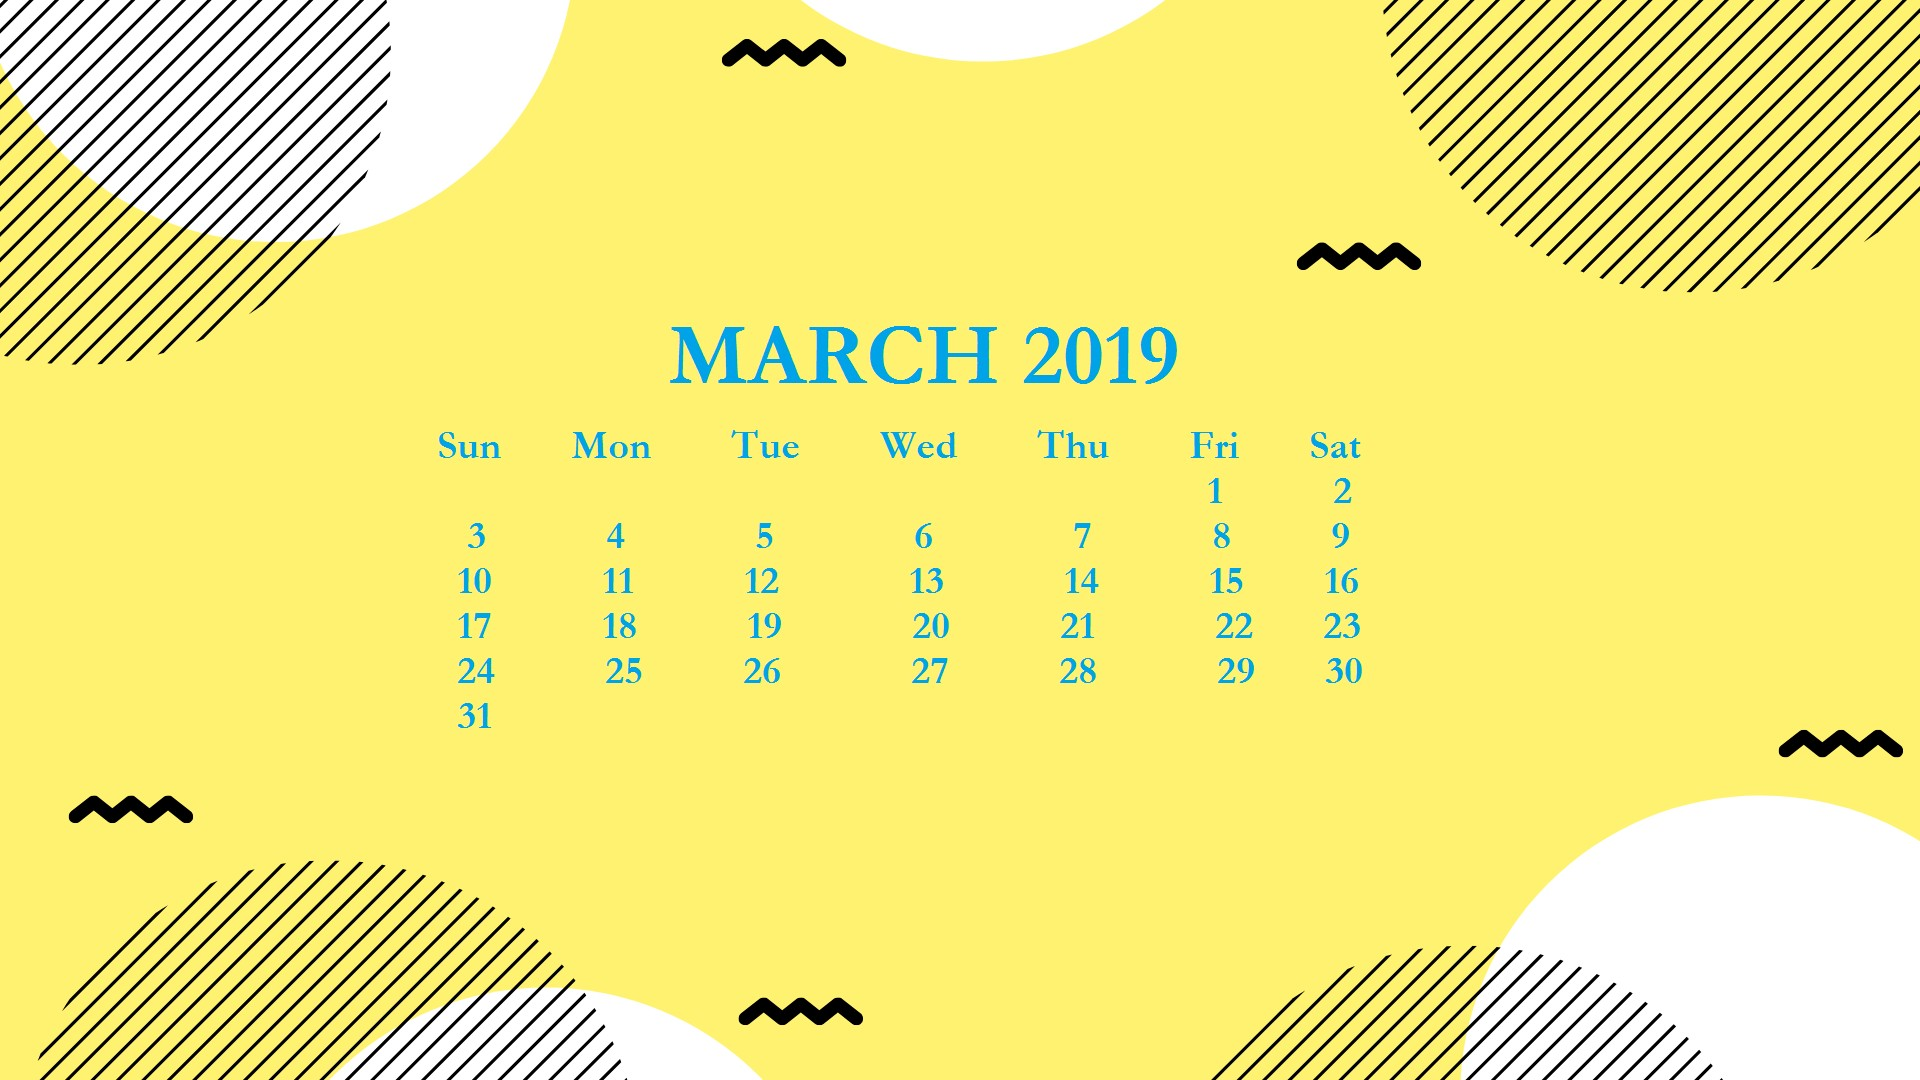 Empty Calendar March 2019 Más Arriba-a-fecha March 2019 Calendar Wallpaper for Desktop March2019 2019calendar Of Empty Calendar March 2019 Más Recientemente Liberado 10 Stylish Free Printable Calendars for 2019